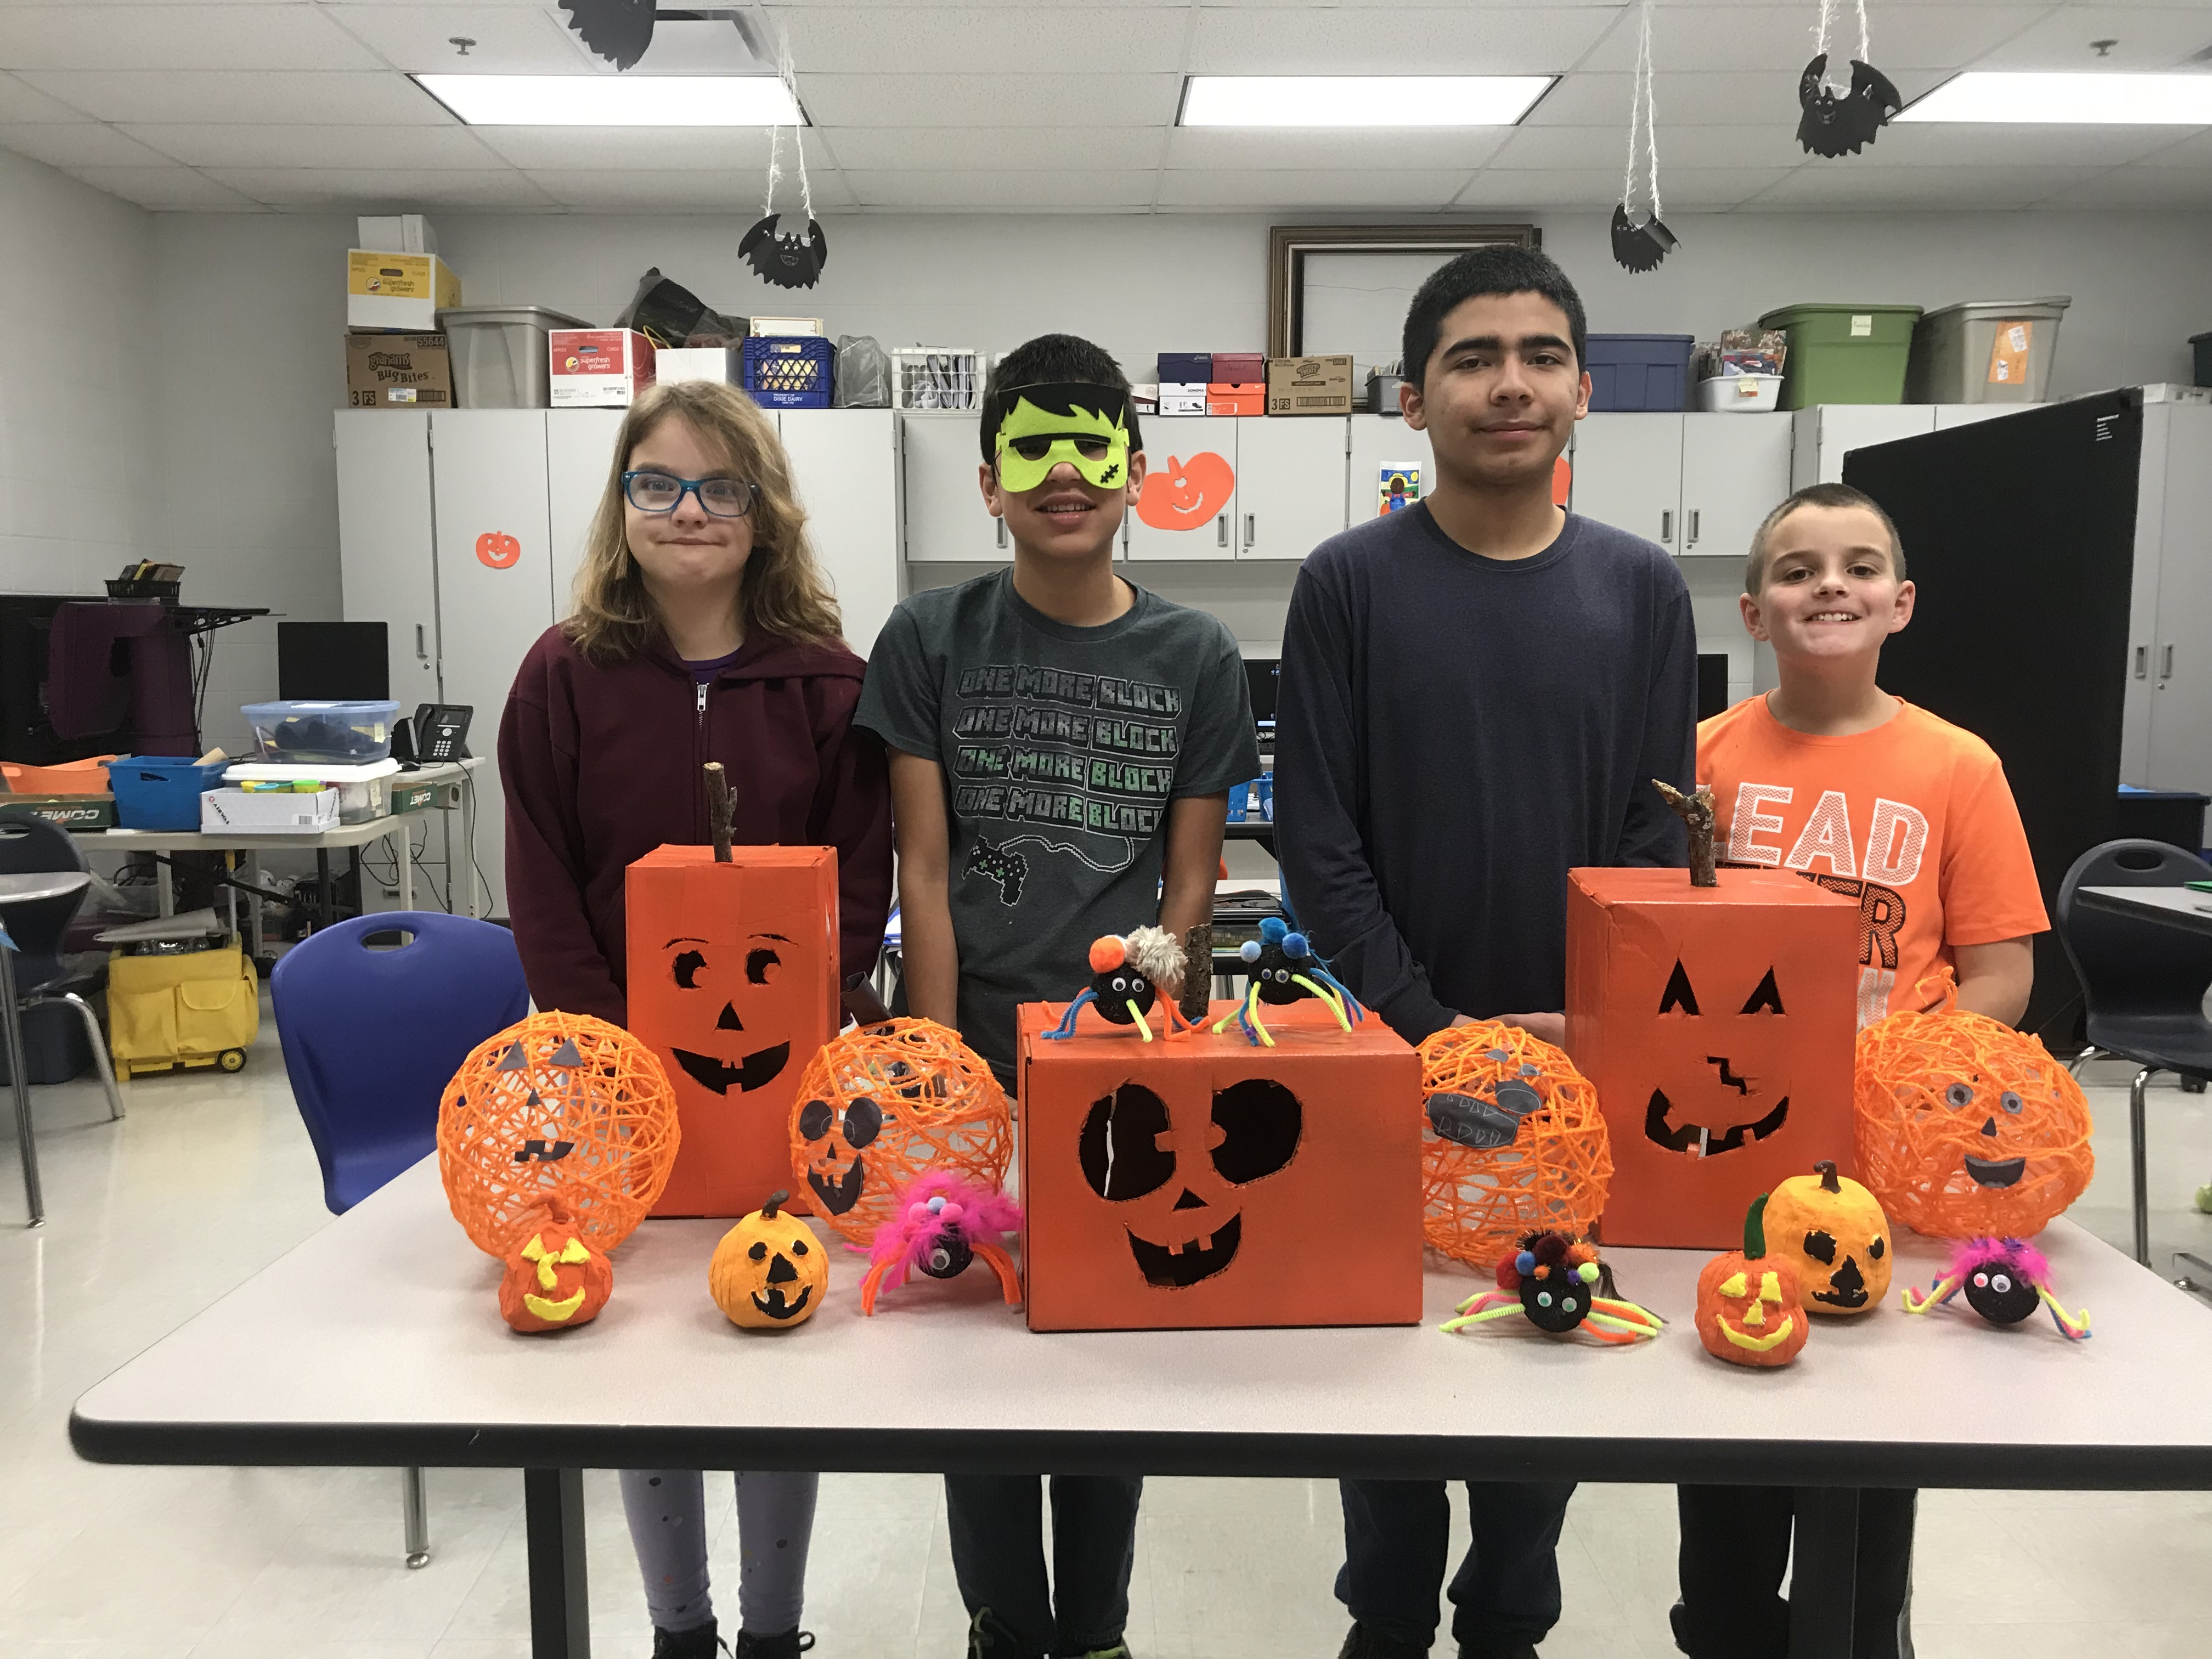 Students from Ms. Chandler's class created some awesome Halloween art work.